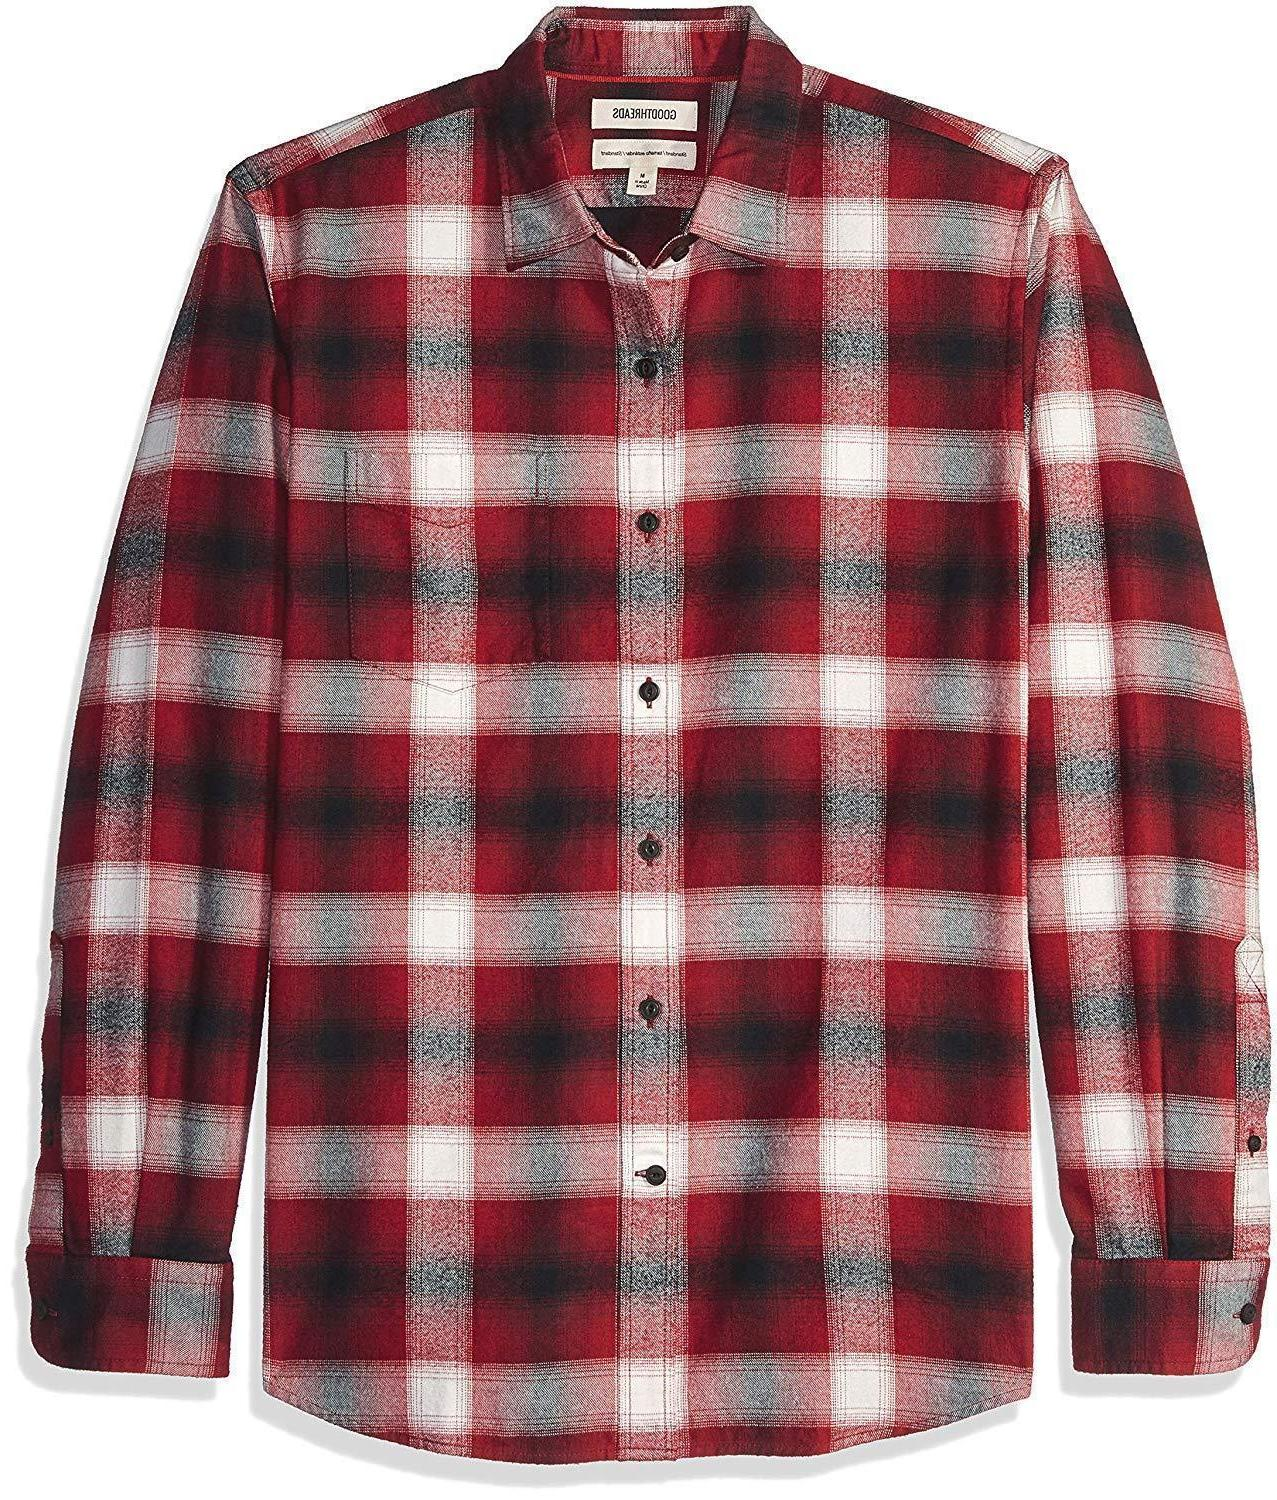 nwt men s long sleeve brushed flannel